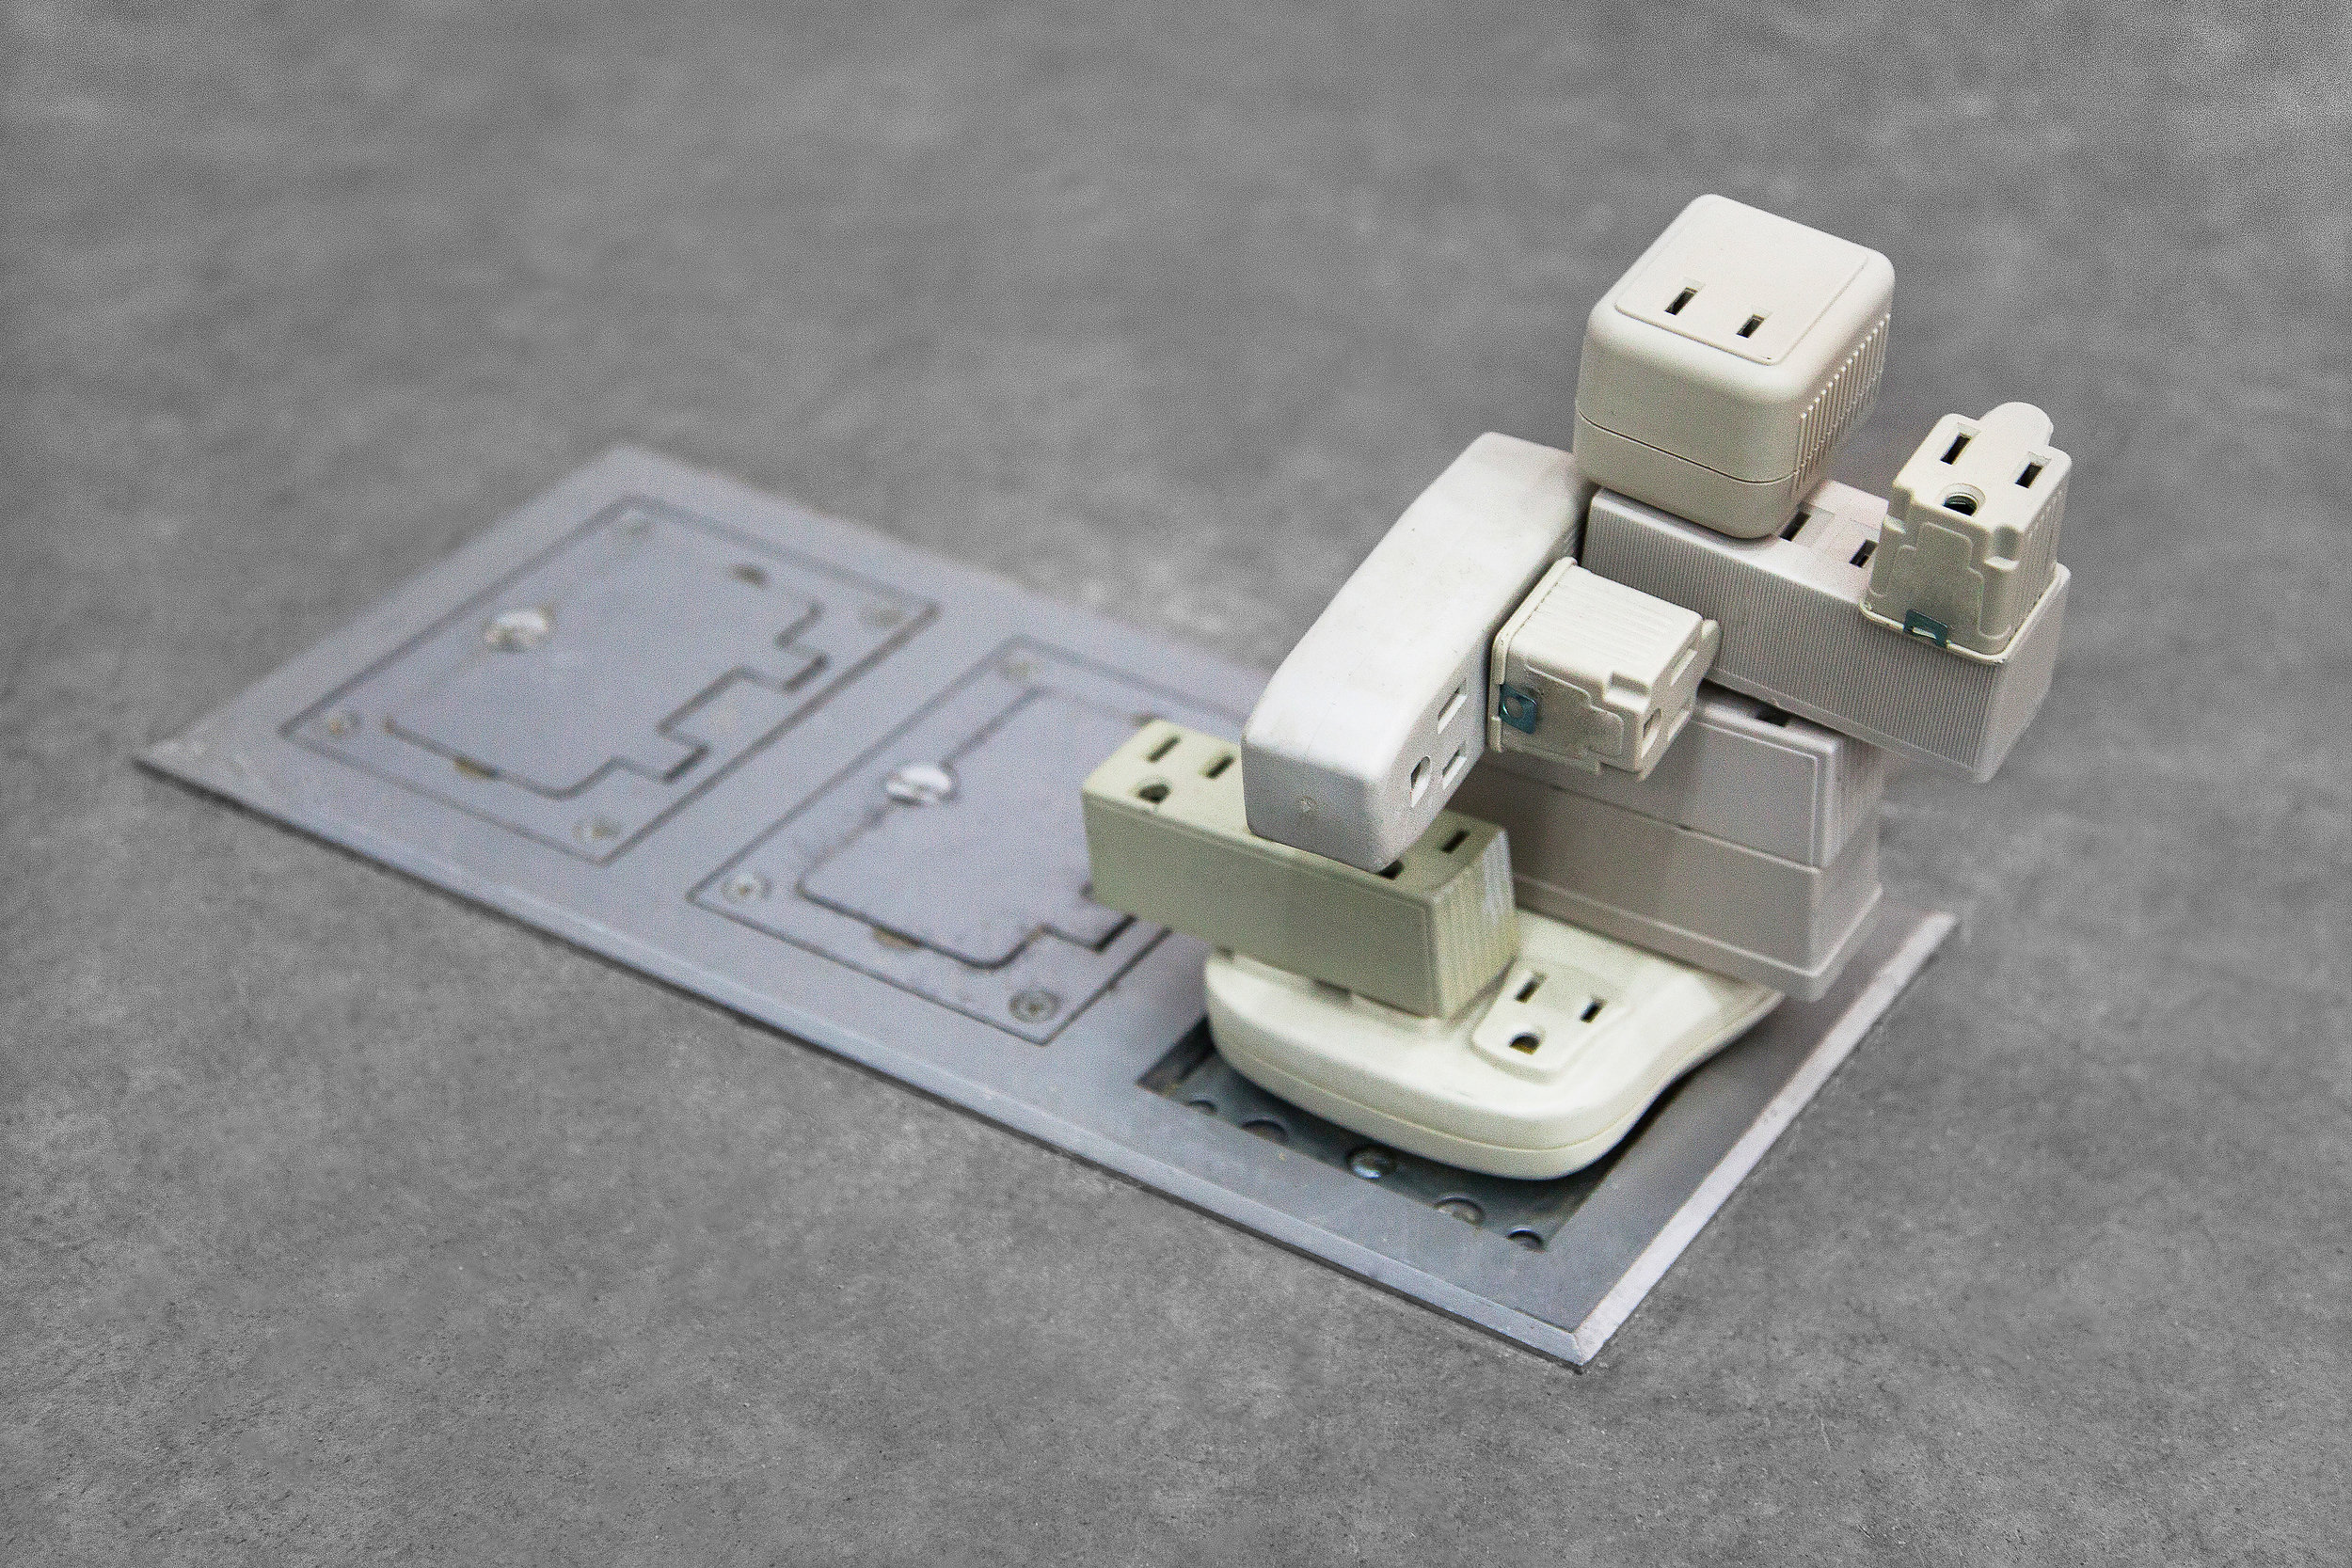 """Plugin Adapter , 2014, outlet adapters, 3""""x 3""""x 4""""(7.6 cm x 7.6 cm x 10.2 cm)"""